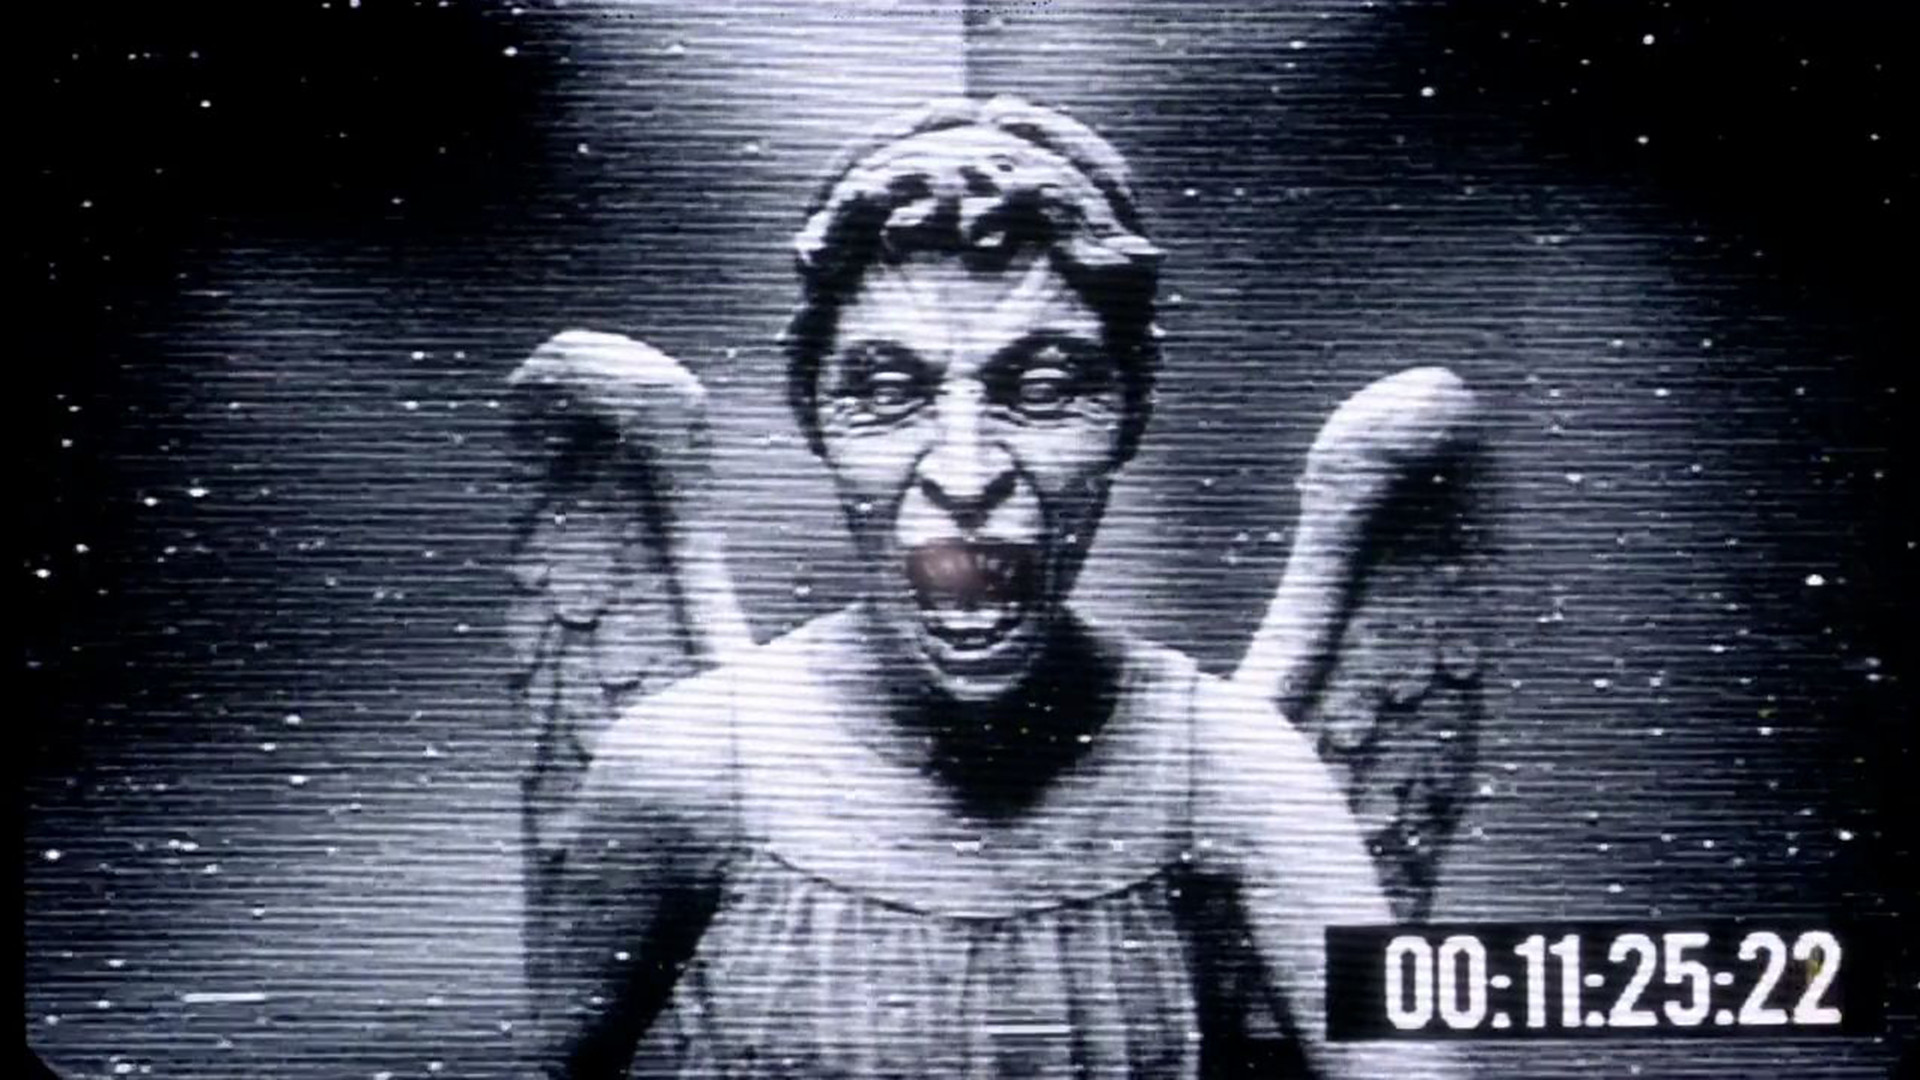 Weeping Angel iPhone Wallpaper 51 images 1920x1080